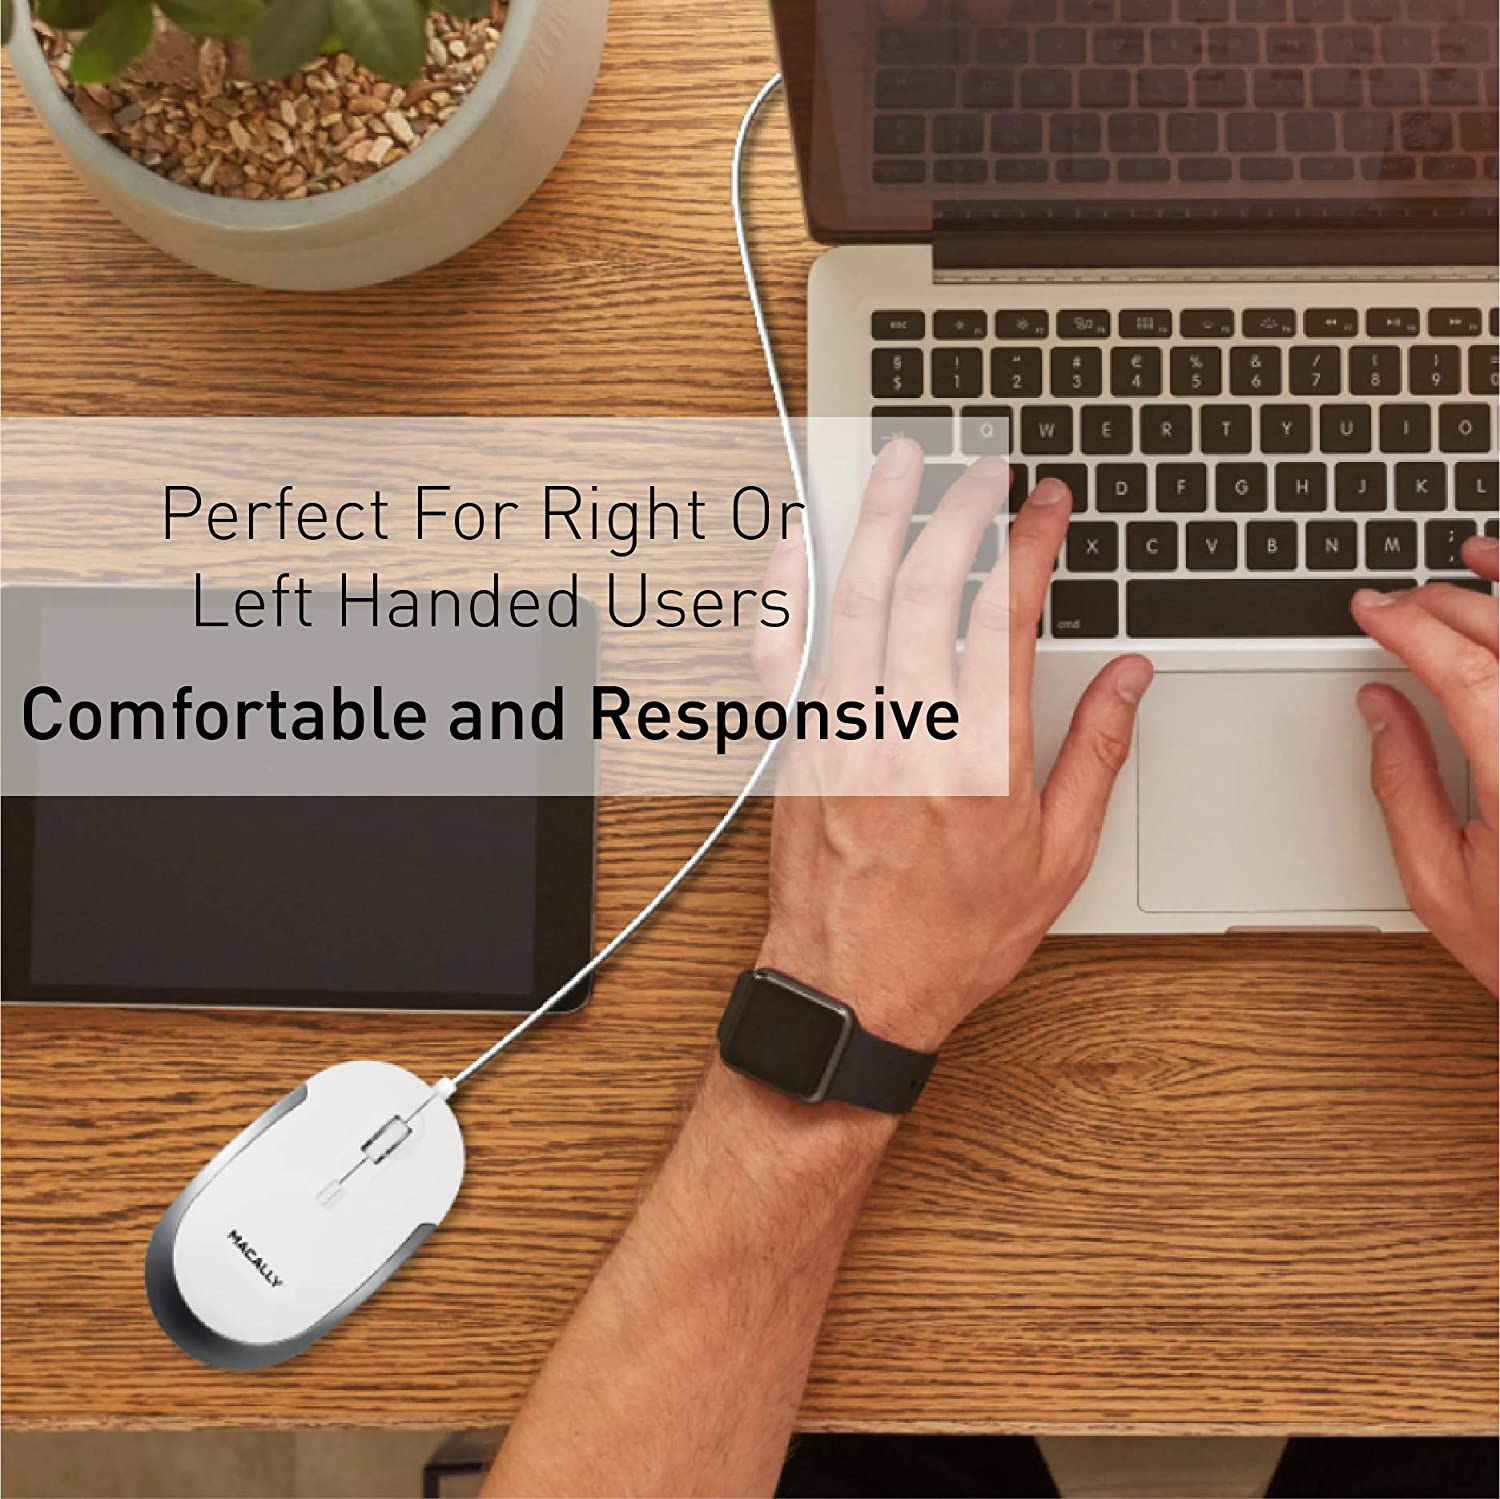 White Slim /& Compact USB Mouse for Apple Mac or Windows PC Laptop//Desktop Designed with Optical Sensor /& DPI Switch Simple /& Comfortable Wired Computer Mouse Macally Silent Wired Mouse